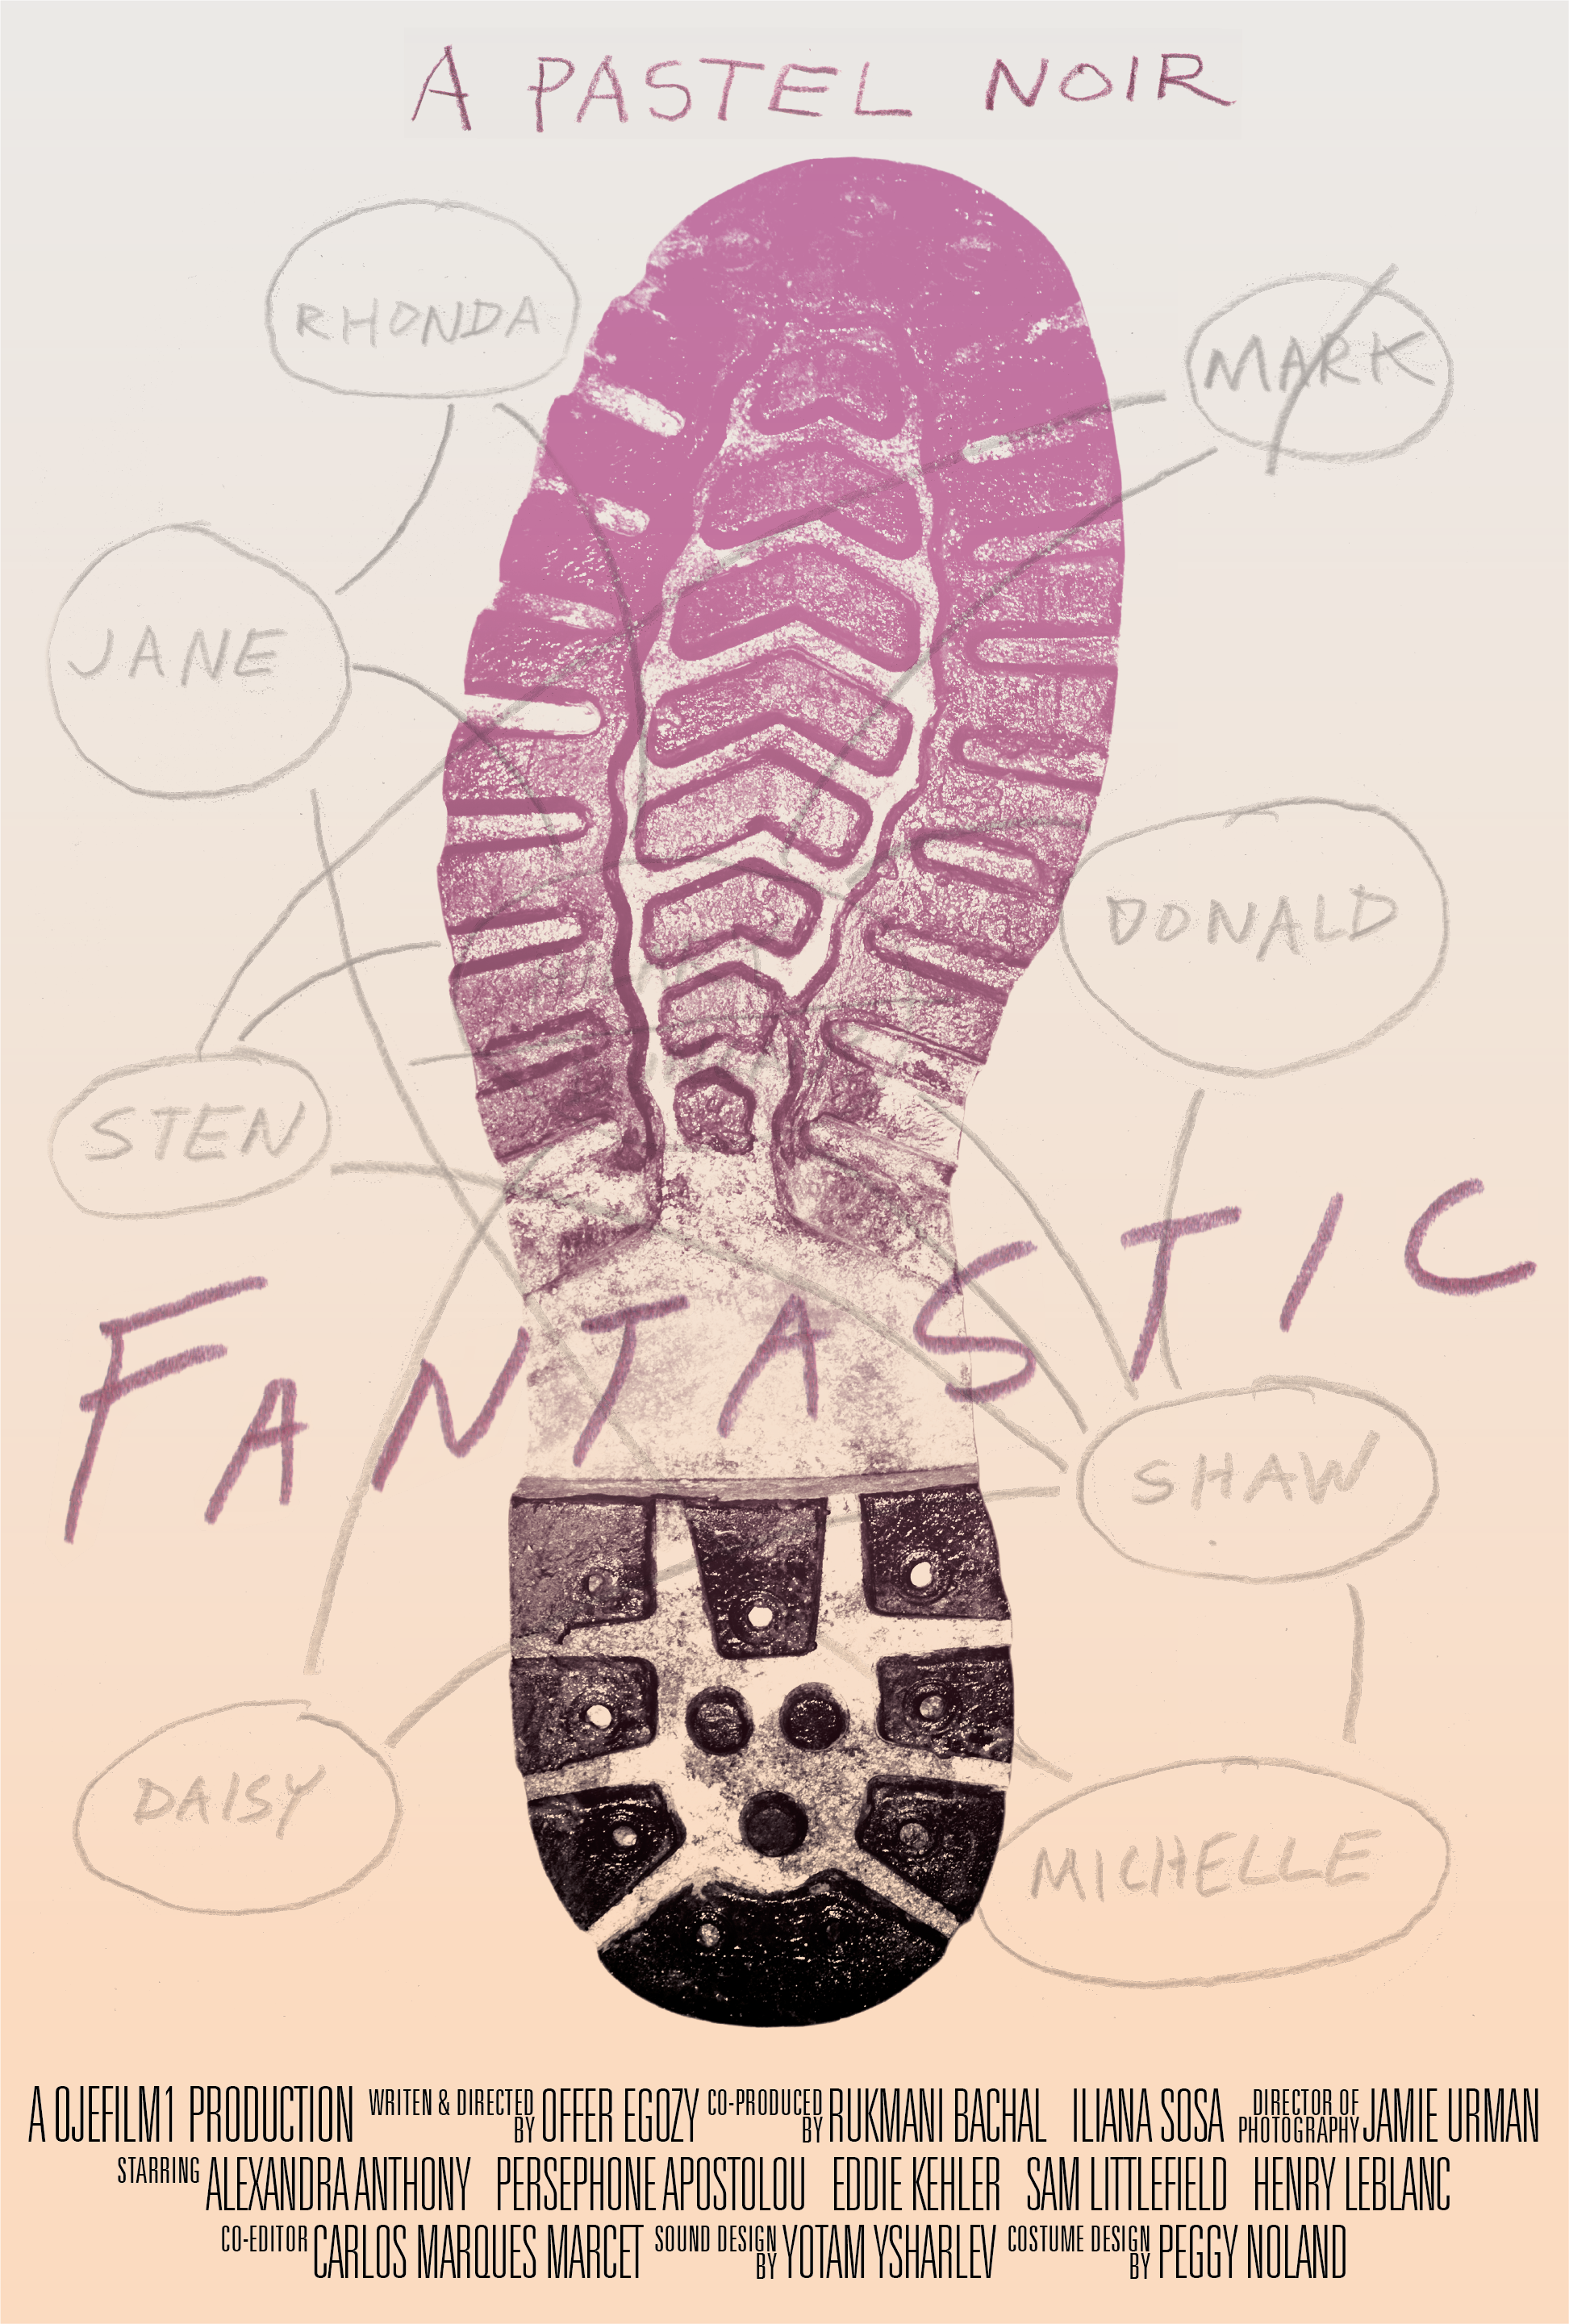 190320-FANTASTICPOSTER_012116-02.png